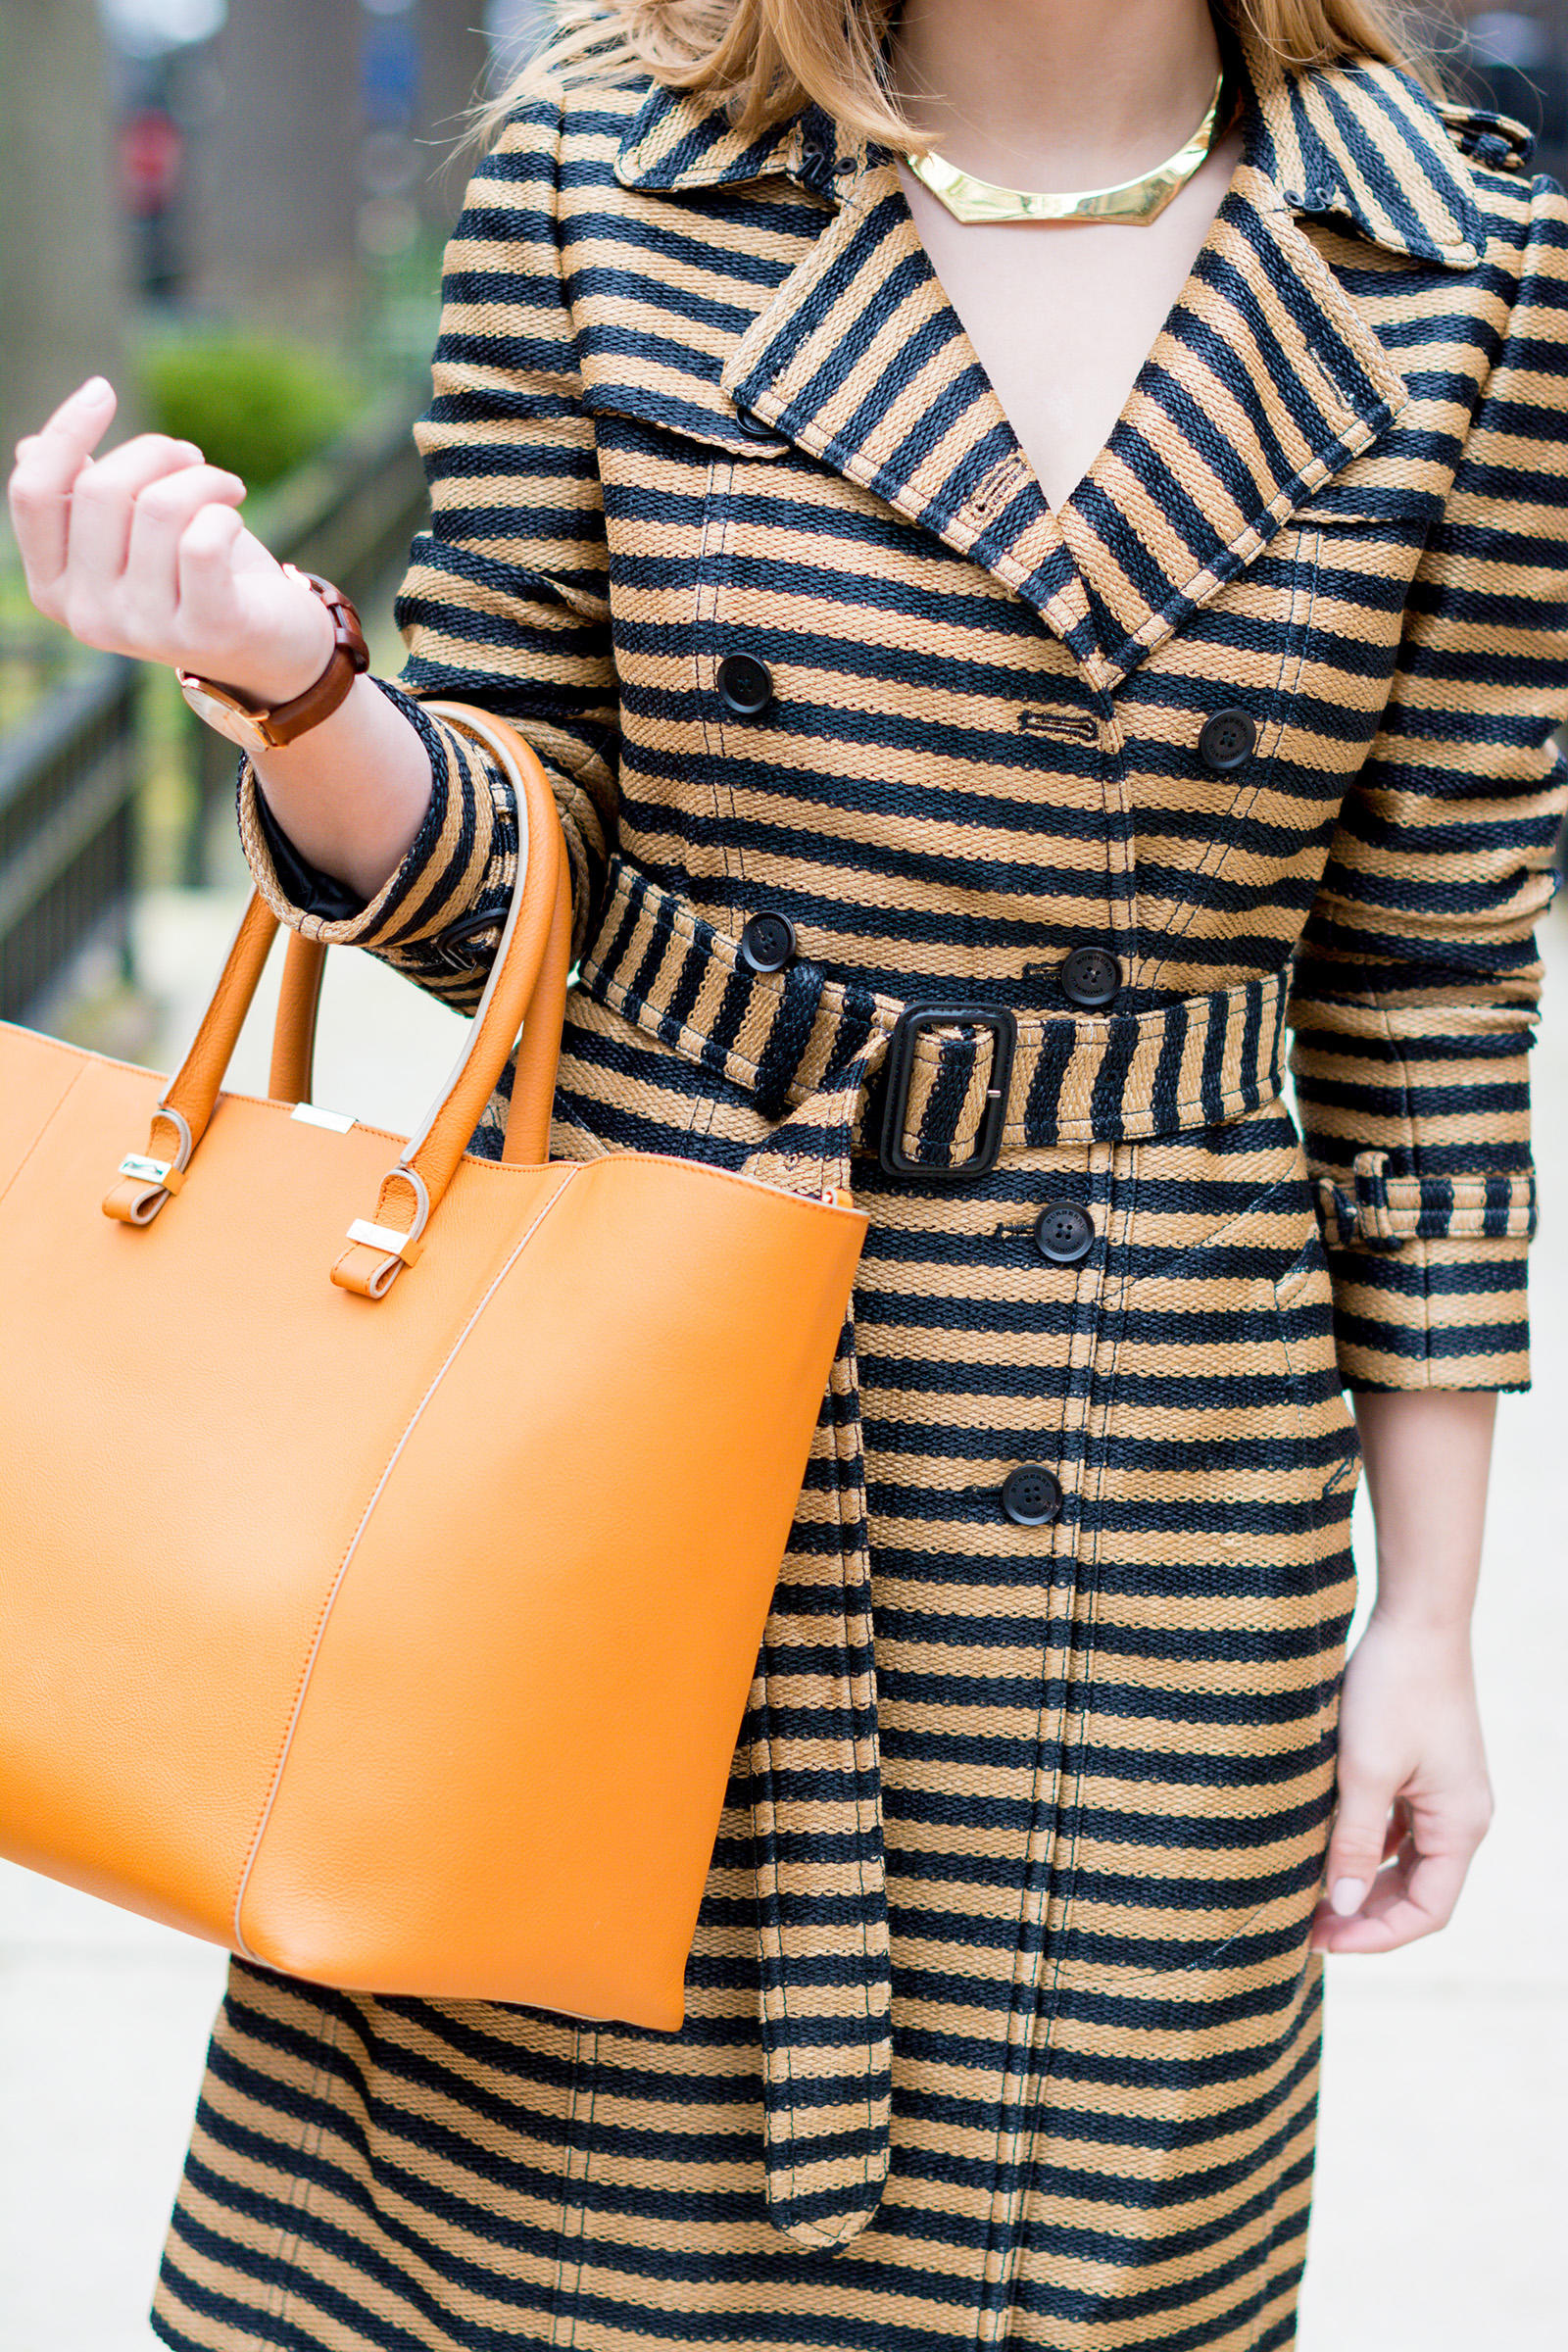 Burberry Trench Coat Spring Style